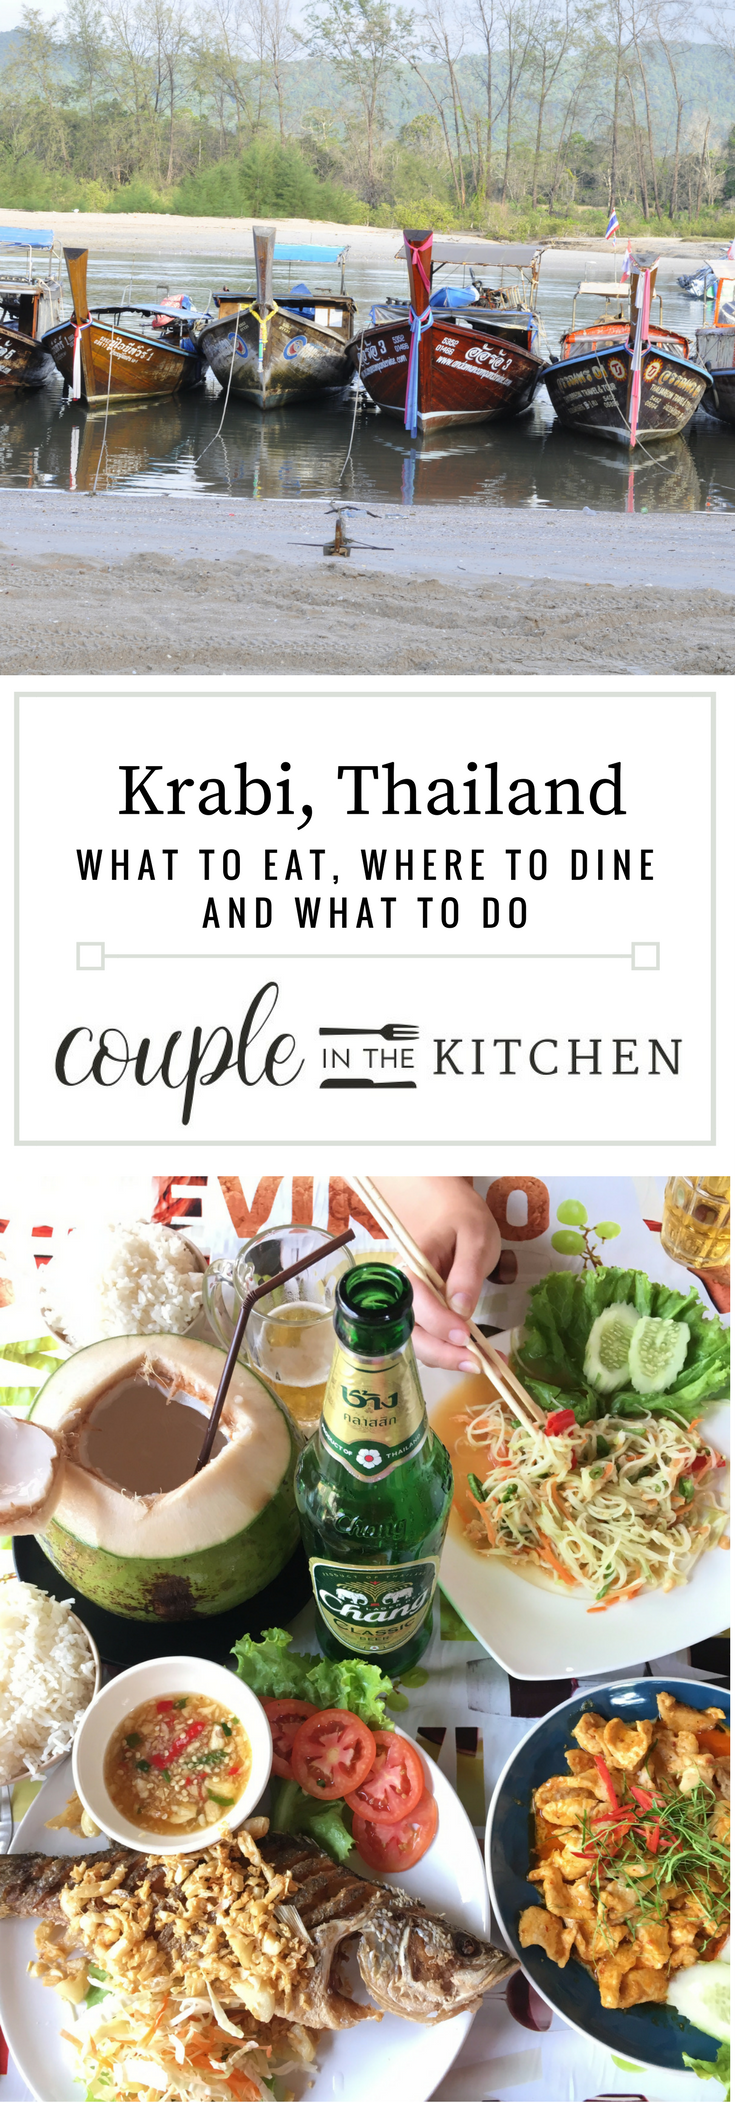 What to do in Krabi, Thailand | coupleinthekitchen.com